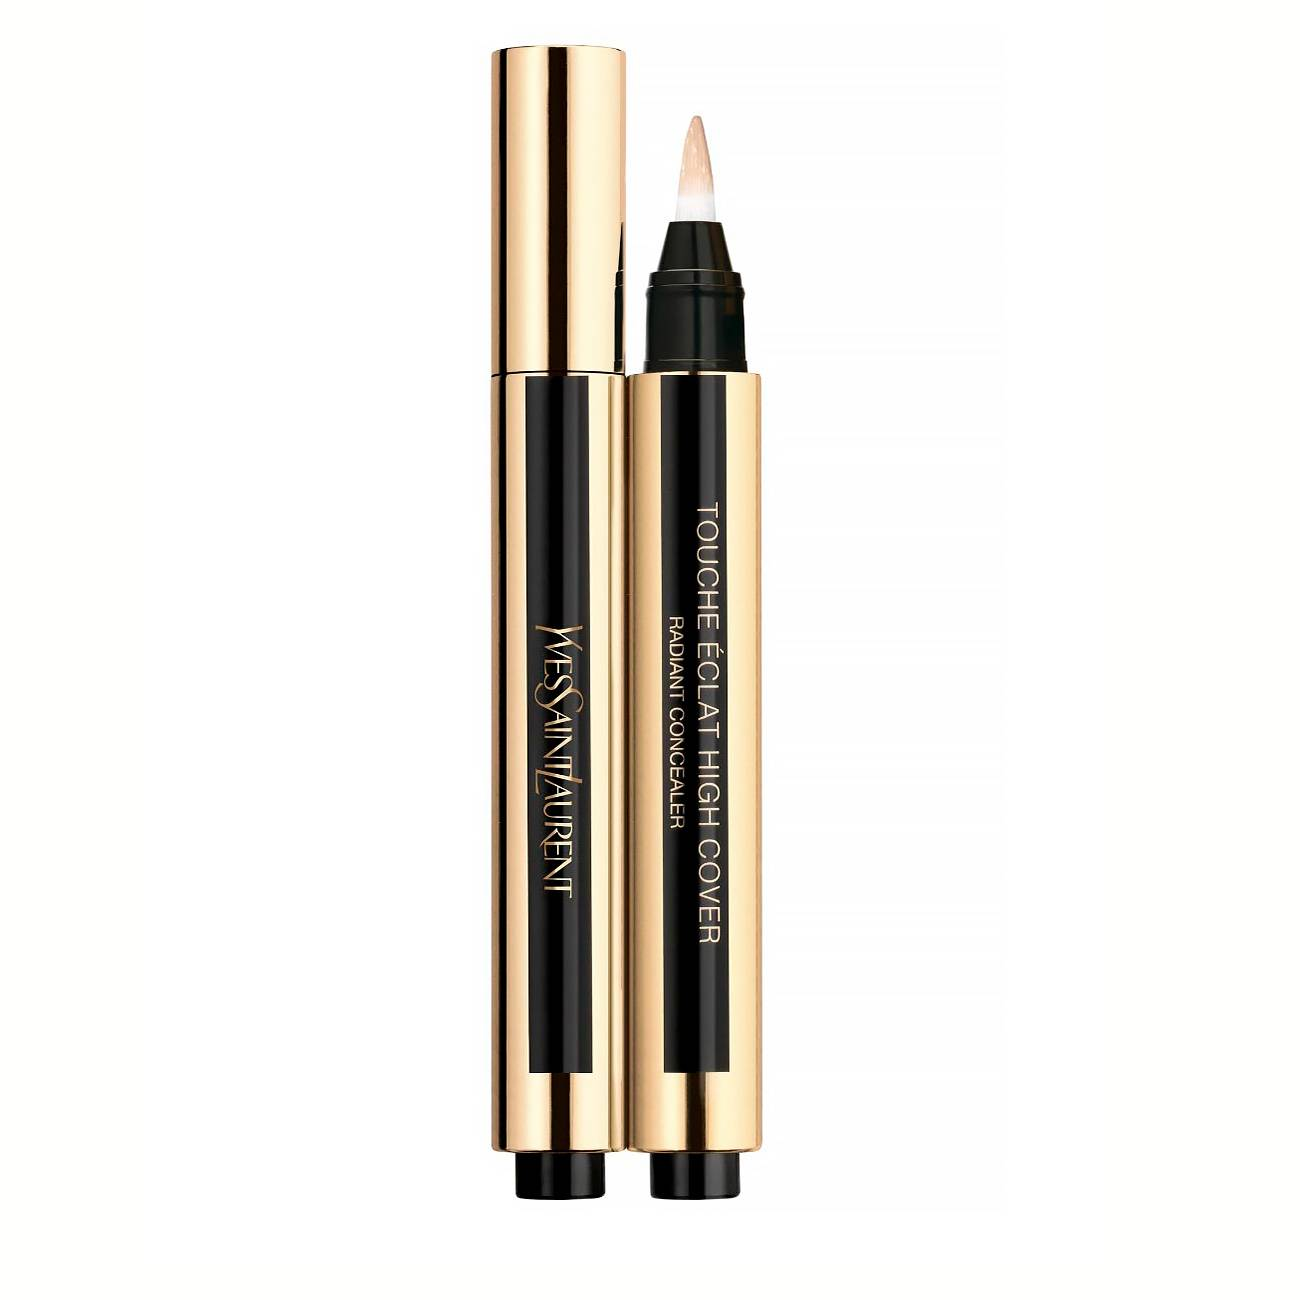 Touche Éclat Concealer 1 2.5ml Yves Saint Laurent imagine 2021 bestvalue.eu